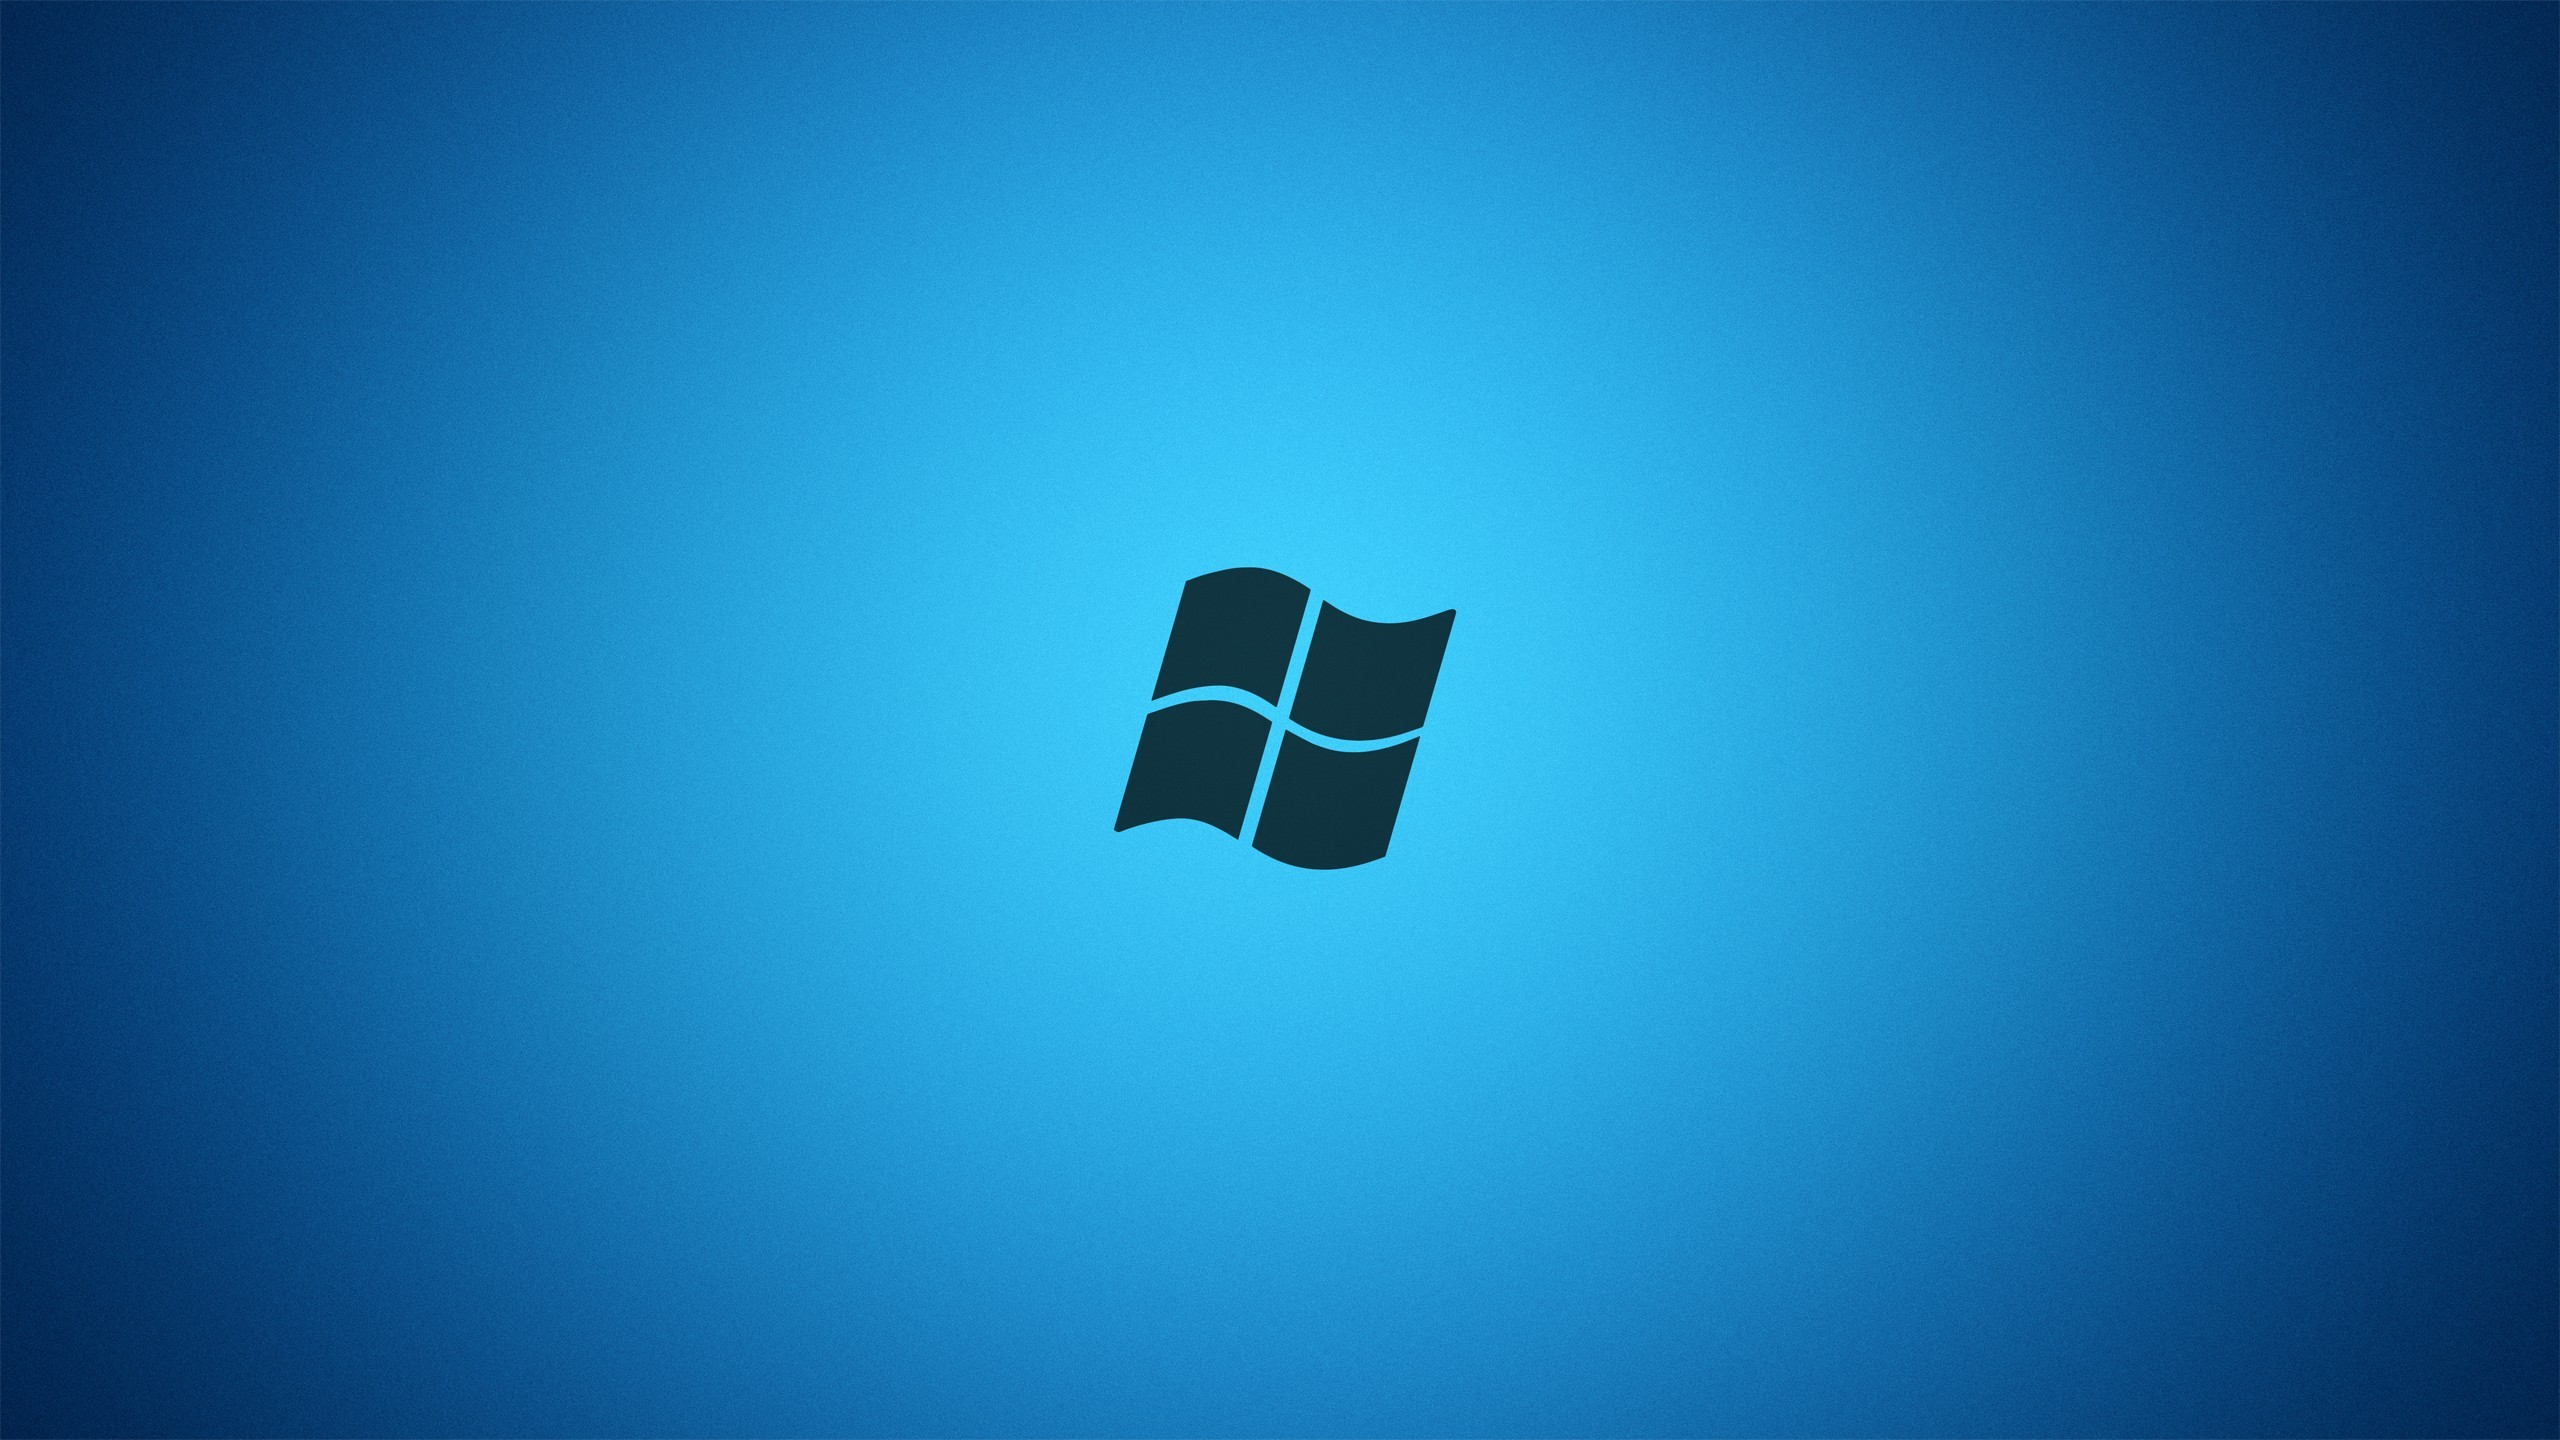 1366x768 windows 7 simple 1366x768 resolution hd 4k wallpapers